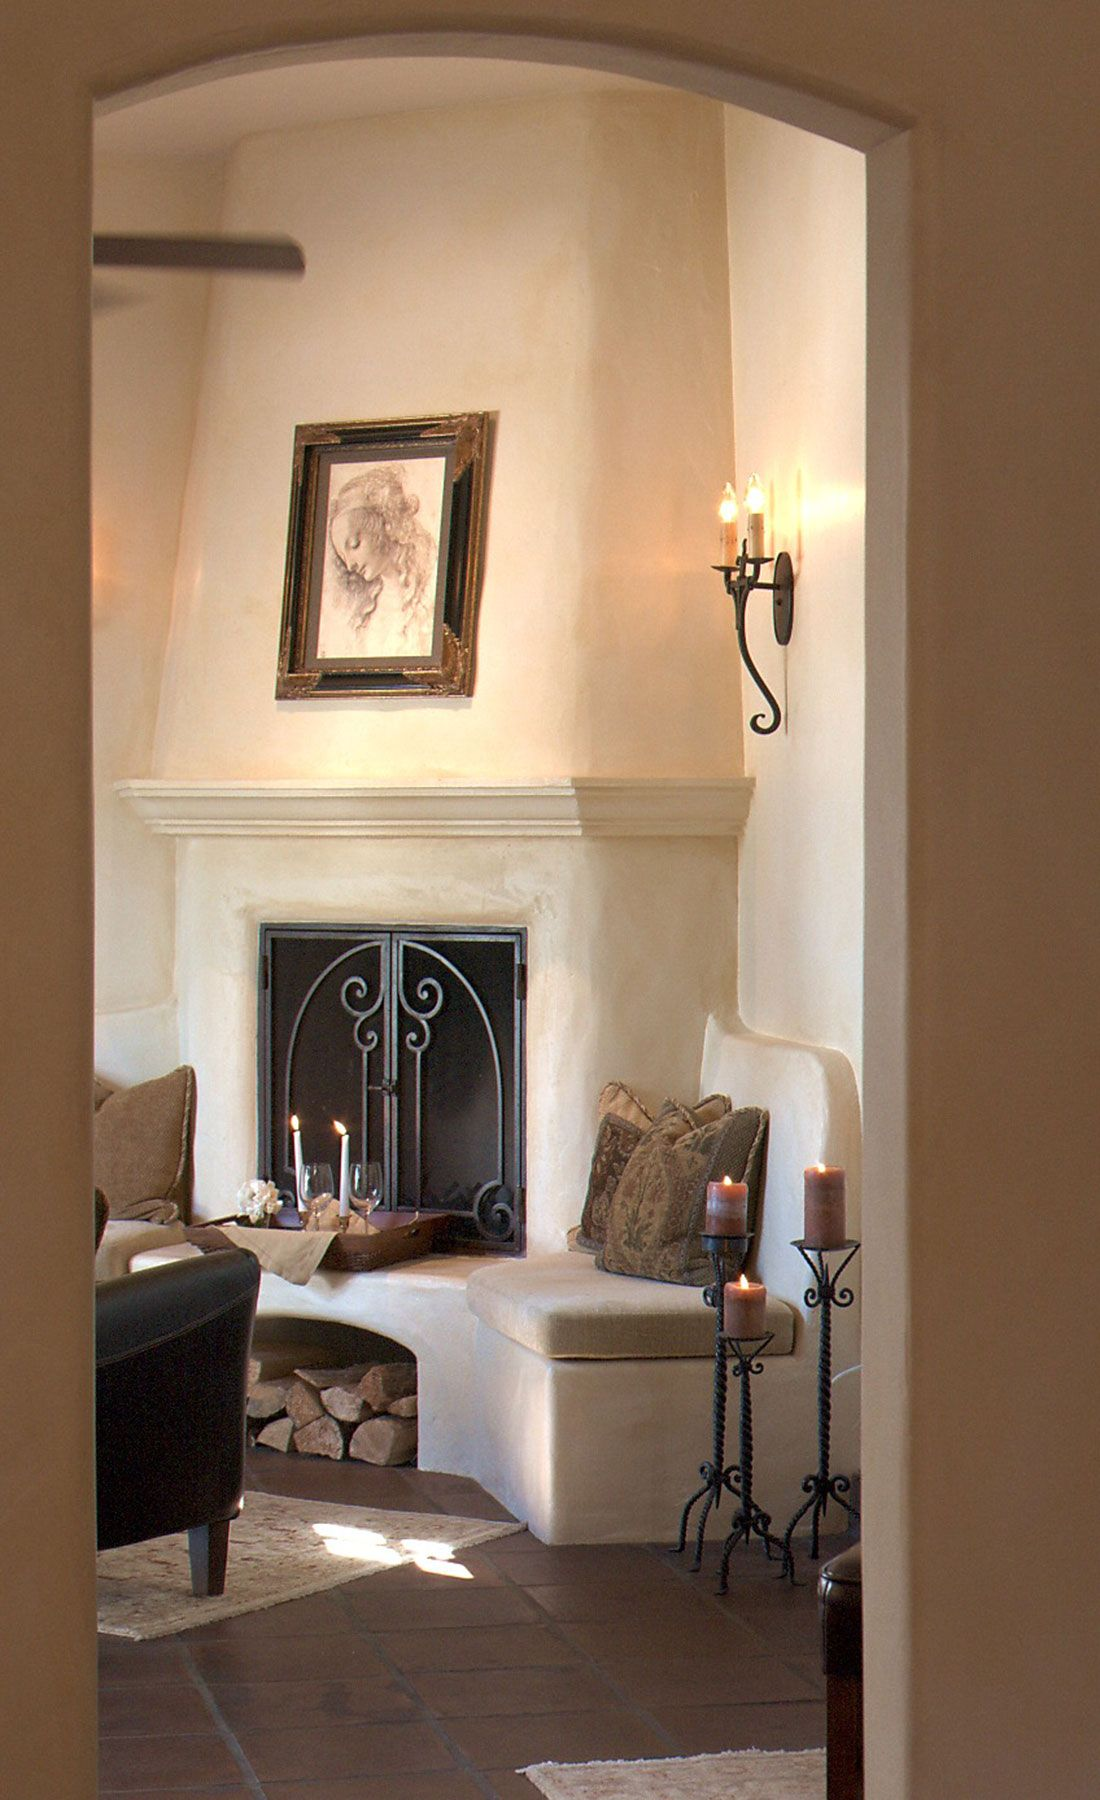 Plaster Fireplace In Spanish Home By Maraya Interior Design With